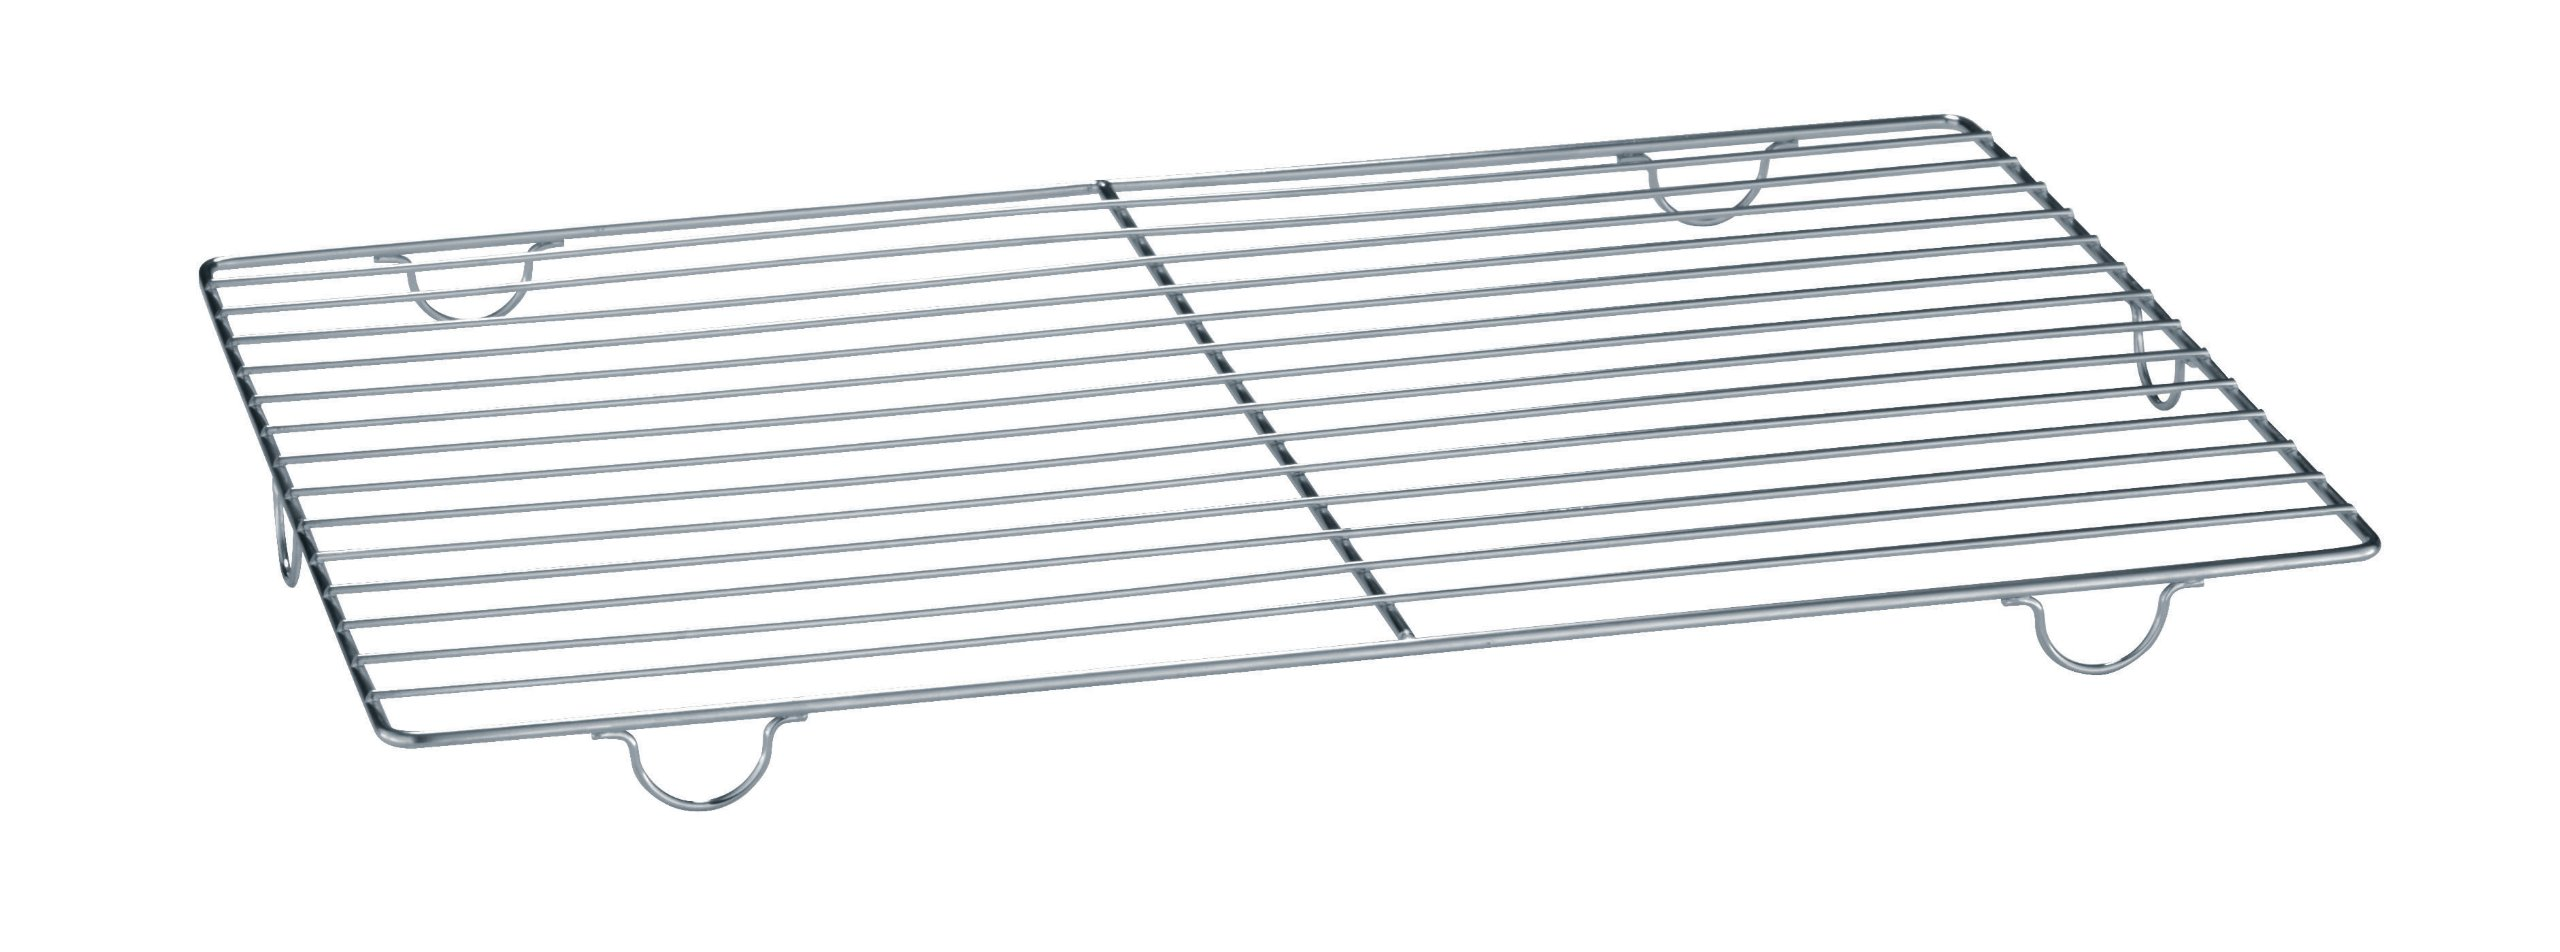 Paderno World Cuisine 18 1/8 Inch by 12 Inch by 1 Inch Stainless-steel Cooling Rack with Feet